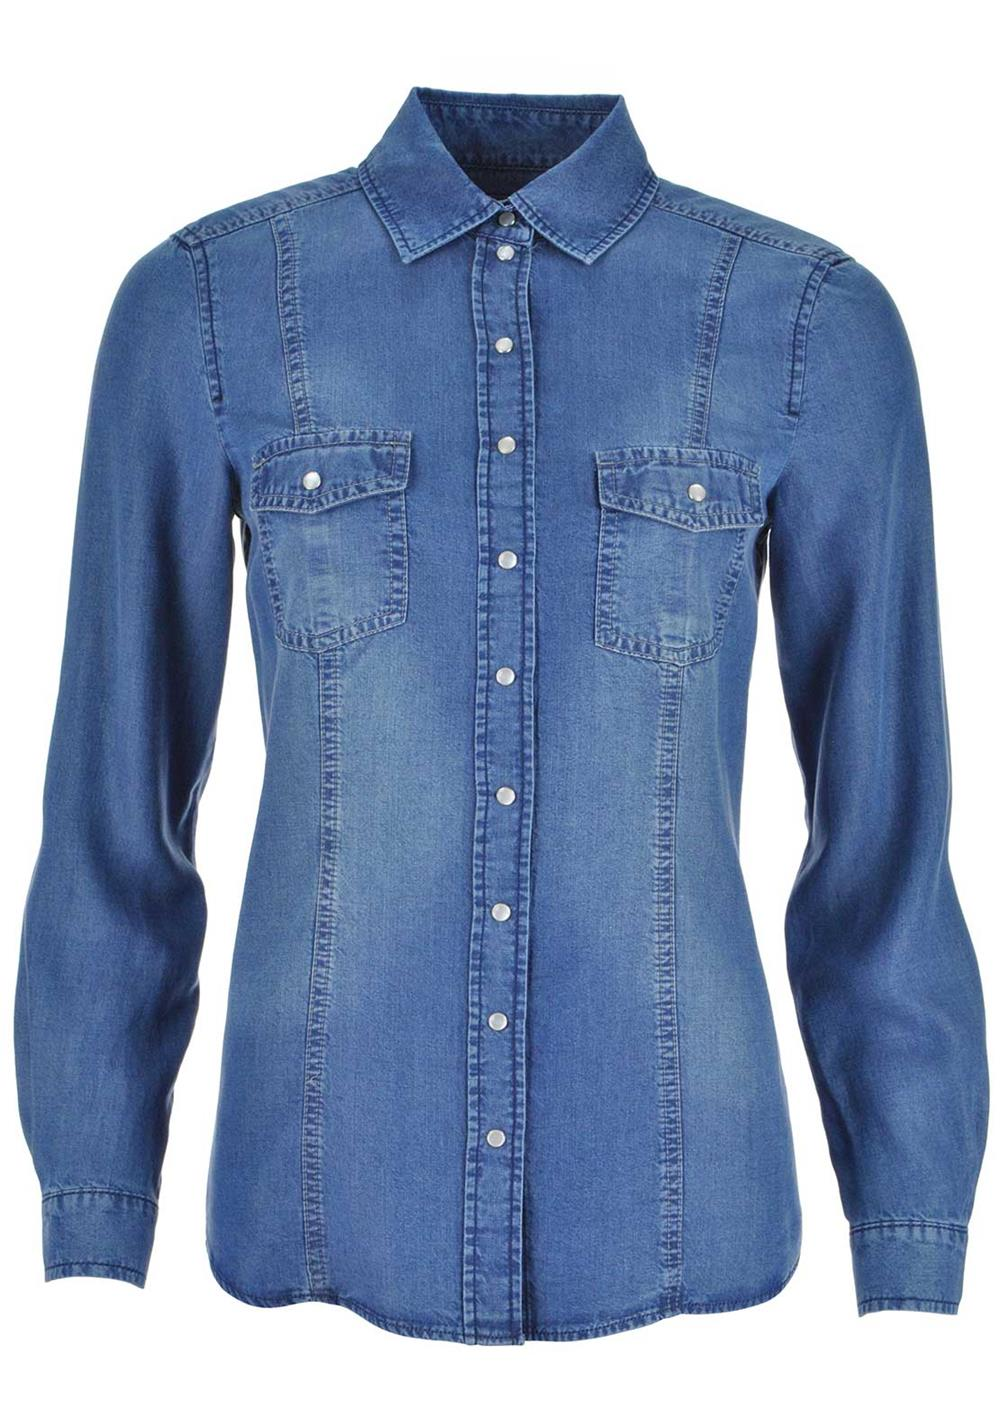 Gerry Weber Long Sleeve Denim Shirt, Blue